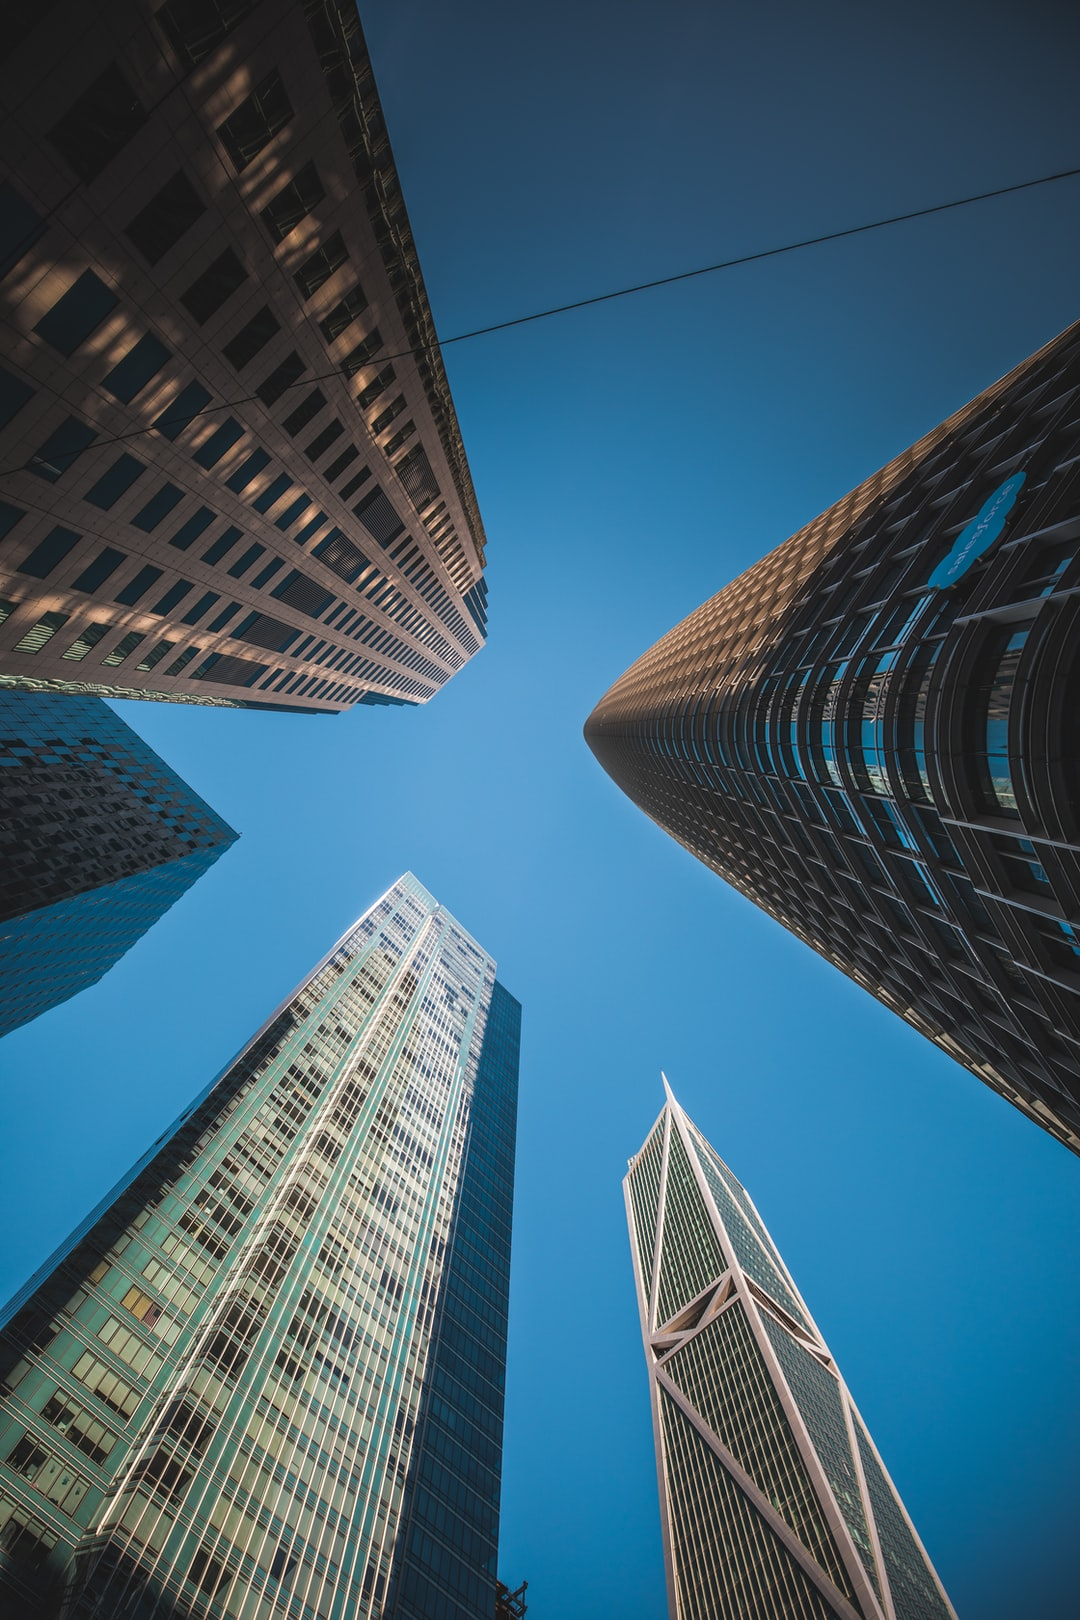 Look-up shot from Downtown San Francisco (specifically Soma, Financial District). This was taken between Salesforce Tower and Millenium Tower at the intersection of Fremont St. and Mission St.